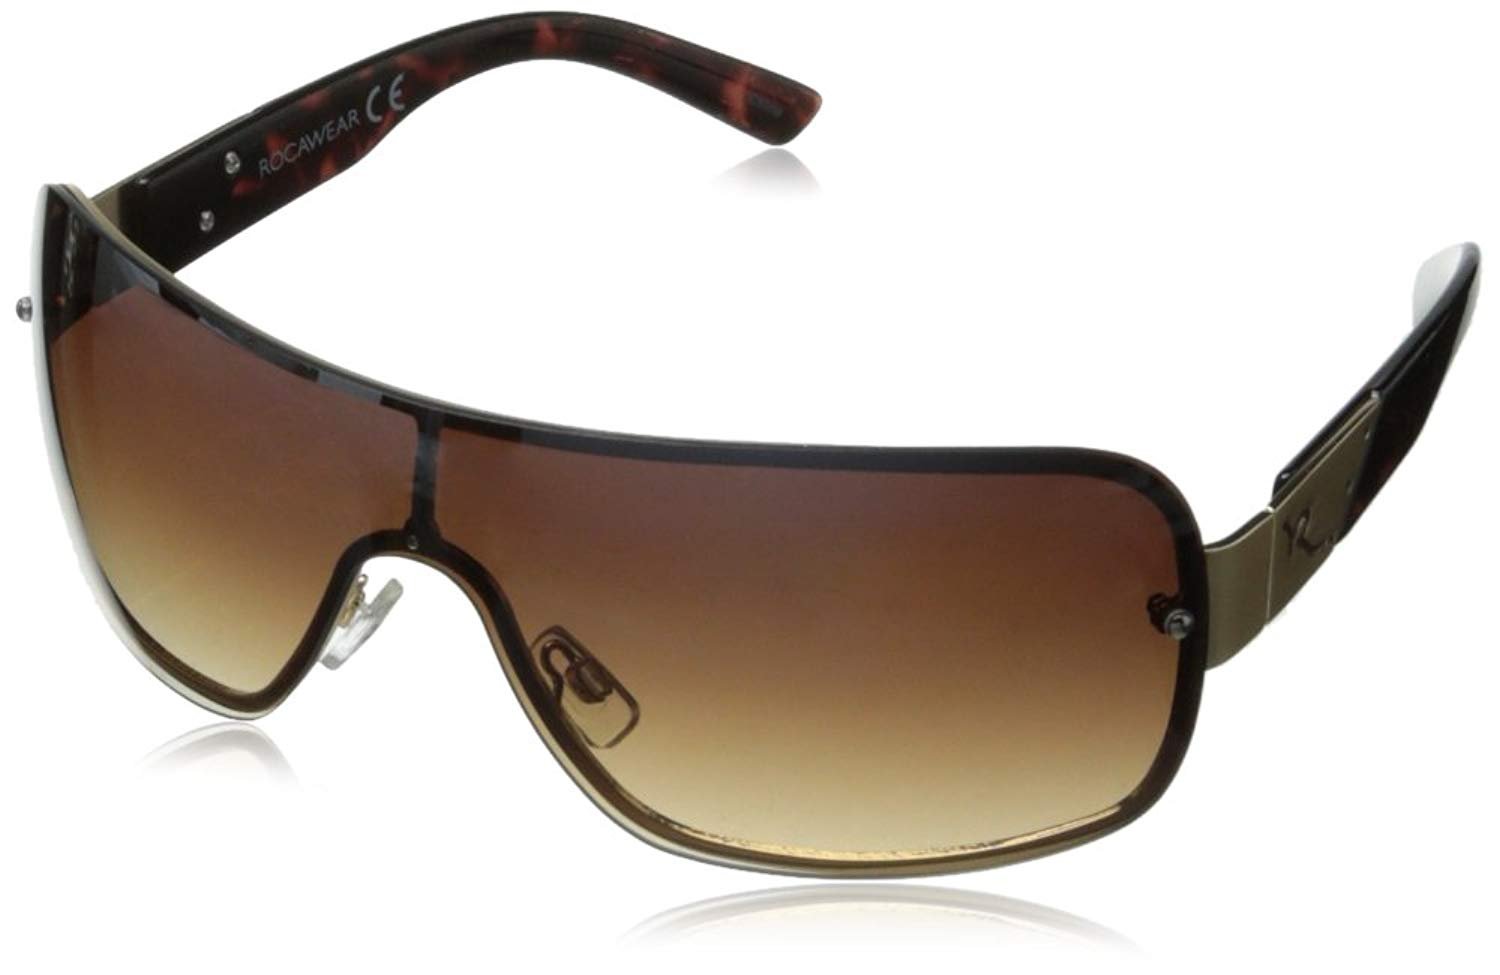 7a782eb52d250 Get Quotations · Rocawear R1210 Shield Sunglasses